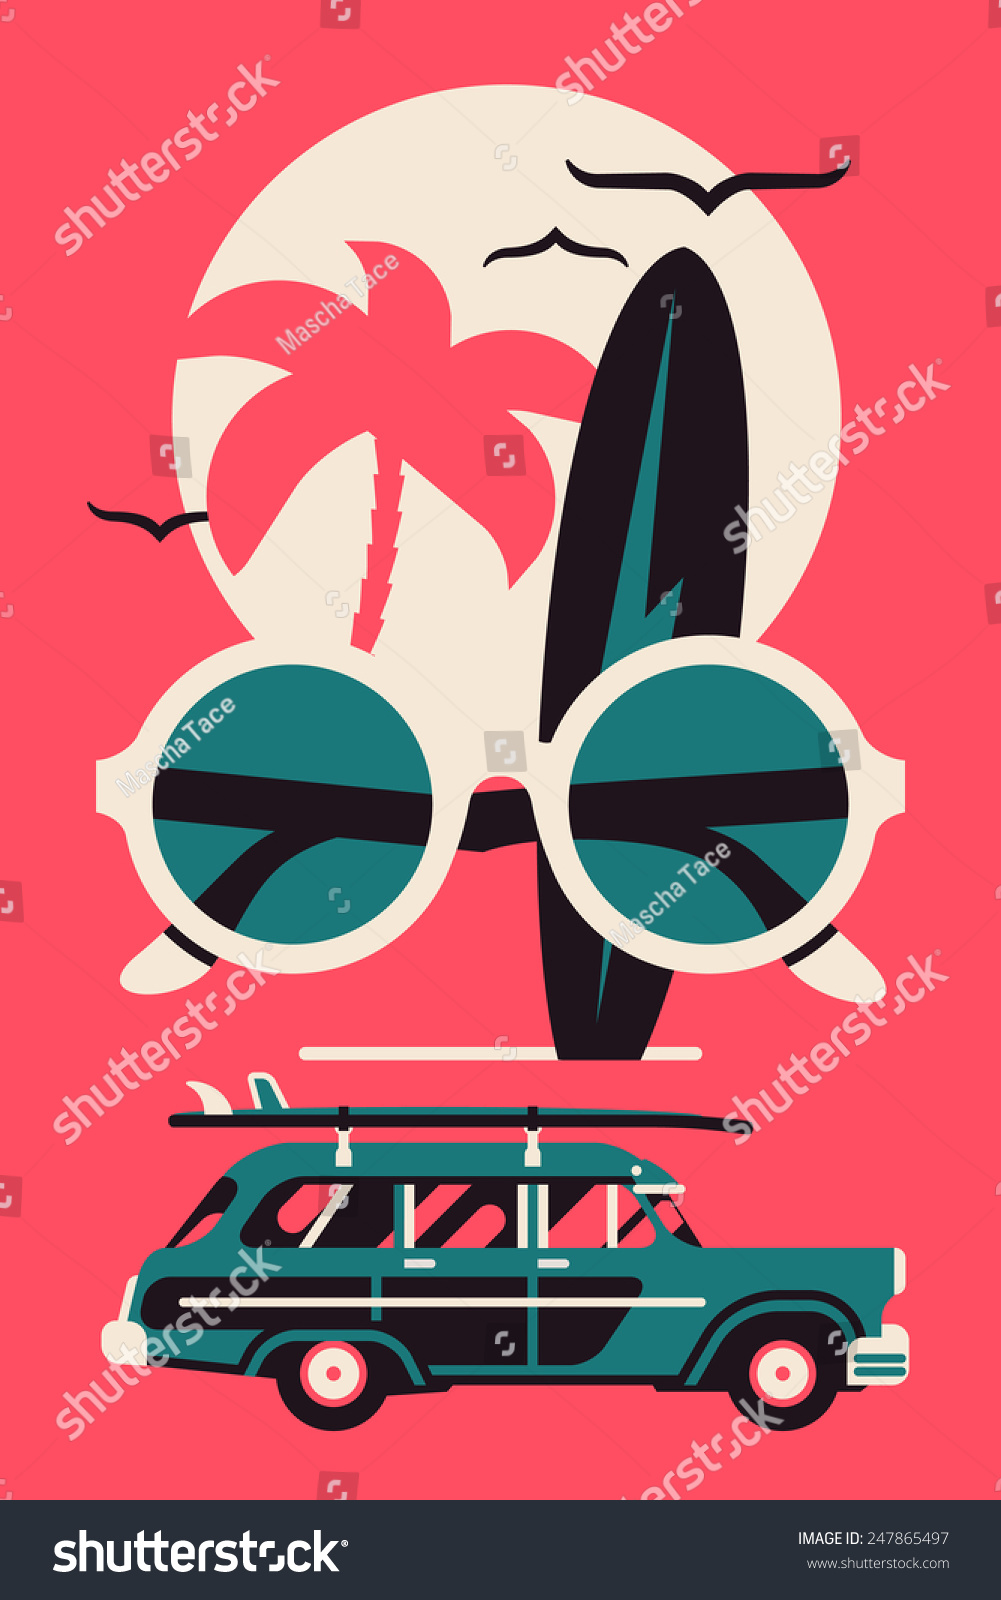 Poster design vector graphics - Vector Modern Flat Wall Art Poster Design On Hot Summer Vacation Beach Recreation Water